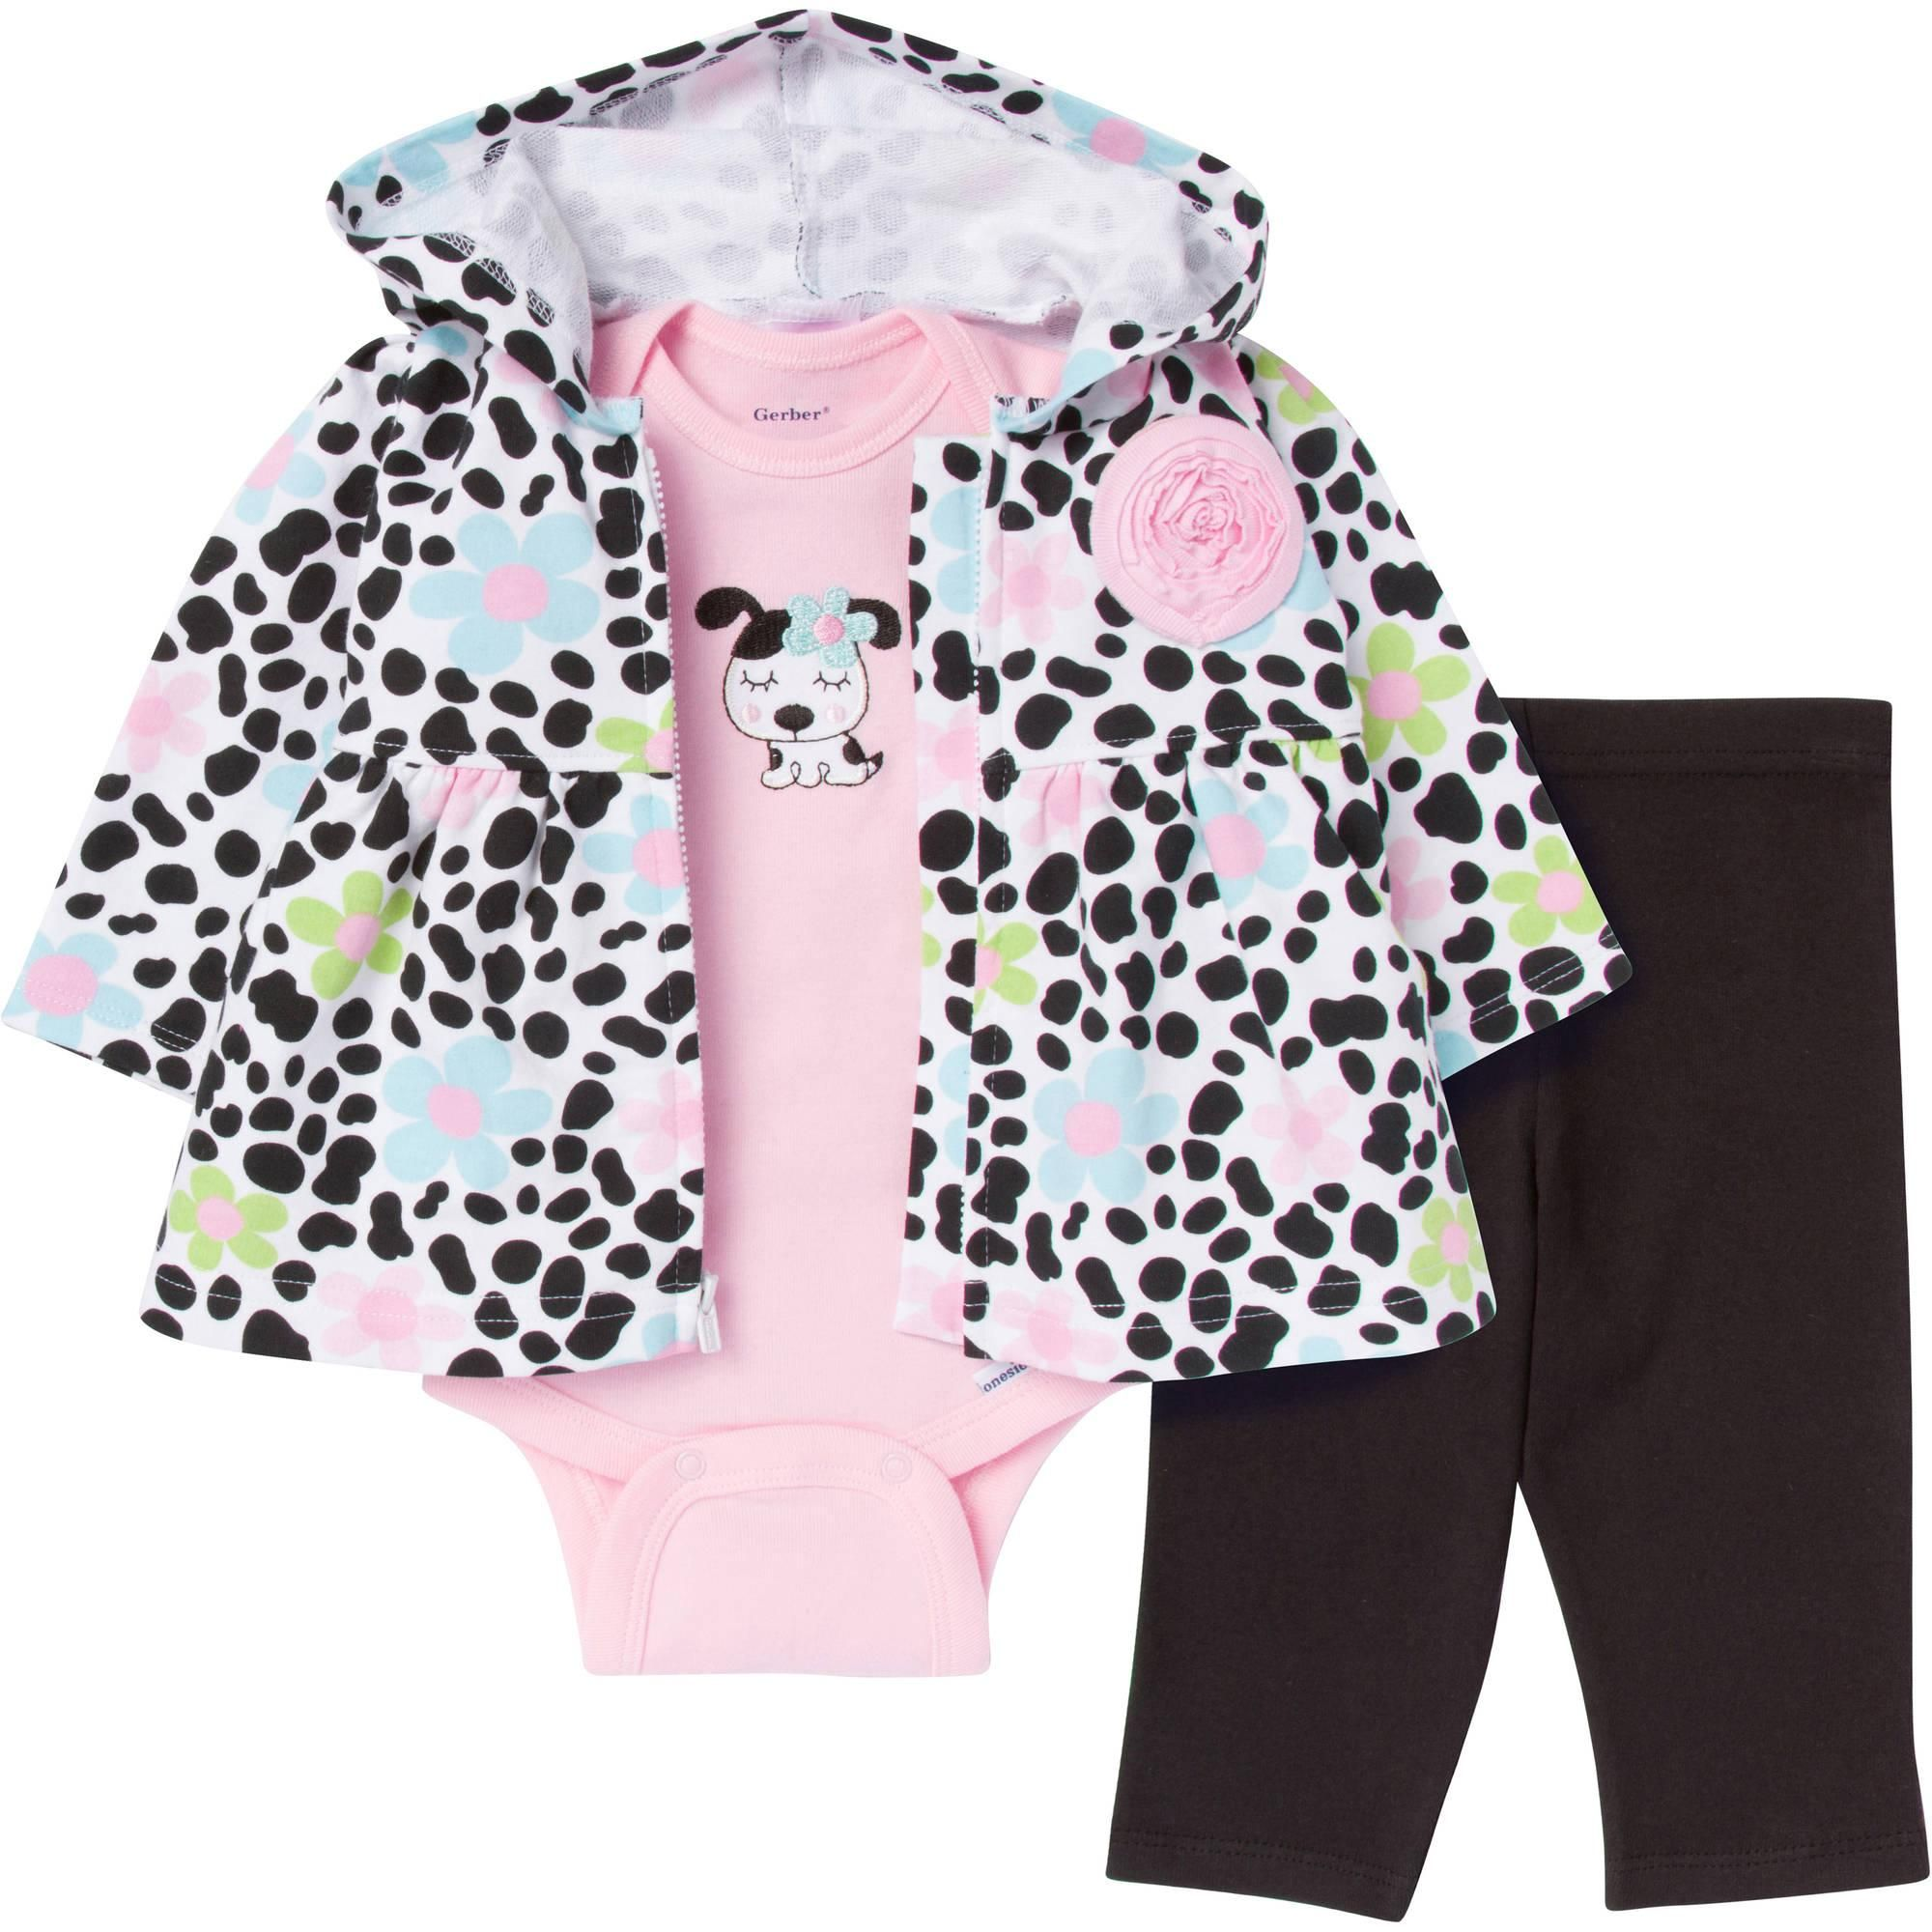 Walmart Baby Girl Clothes Interesting Baby Girl Clothes  Baby & Toddler  Walmart  Baby Stuff Design Ideas